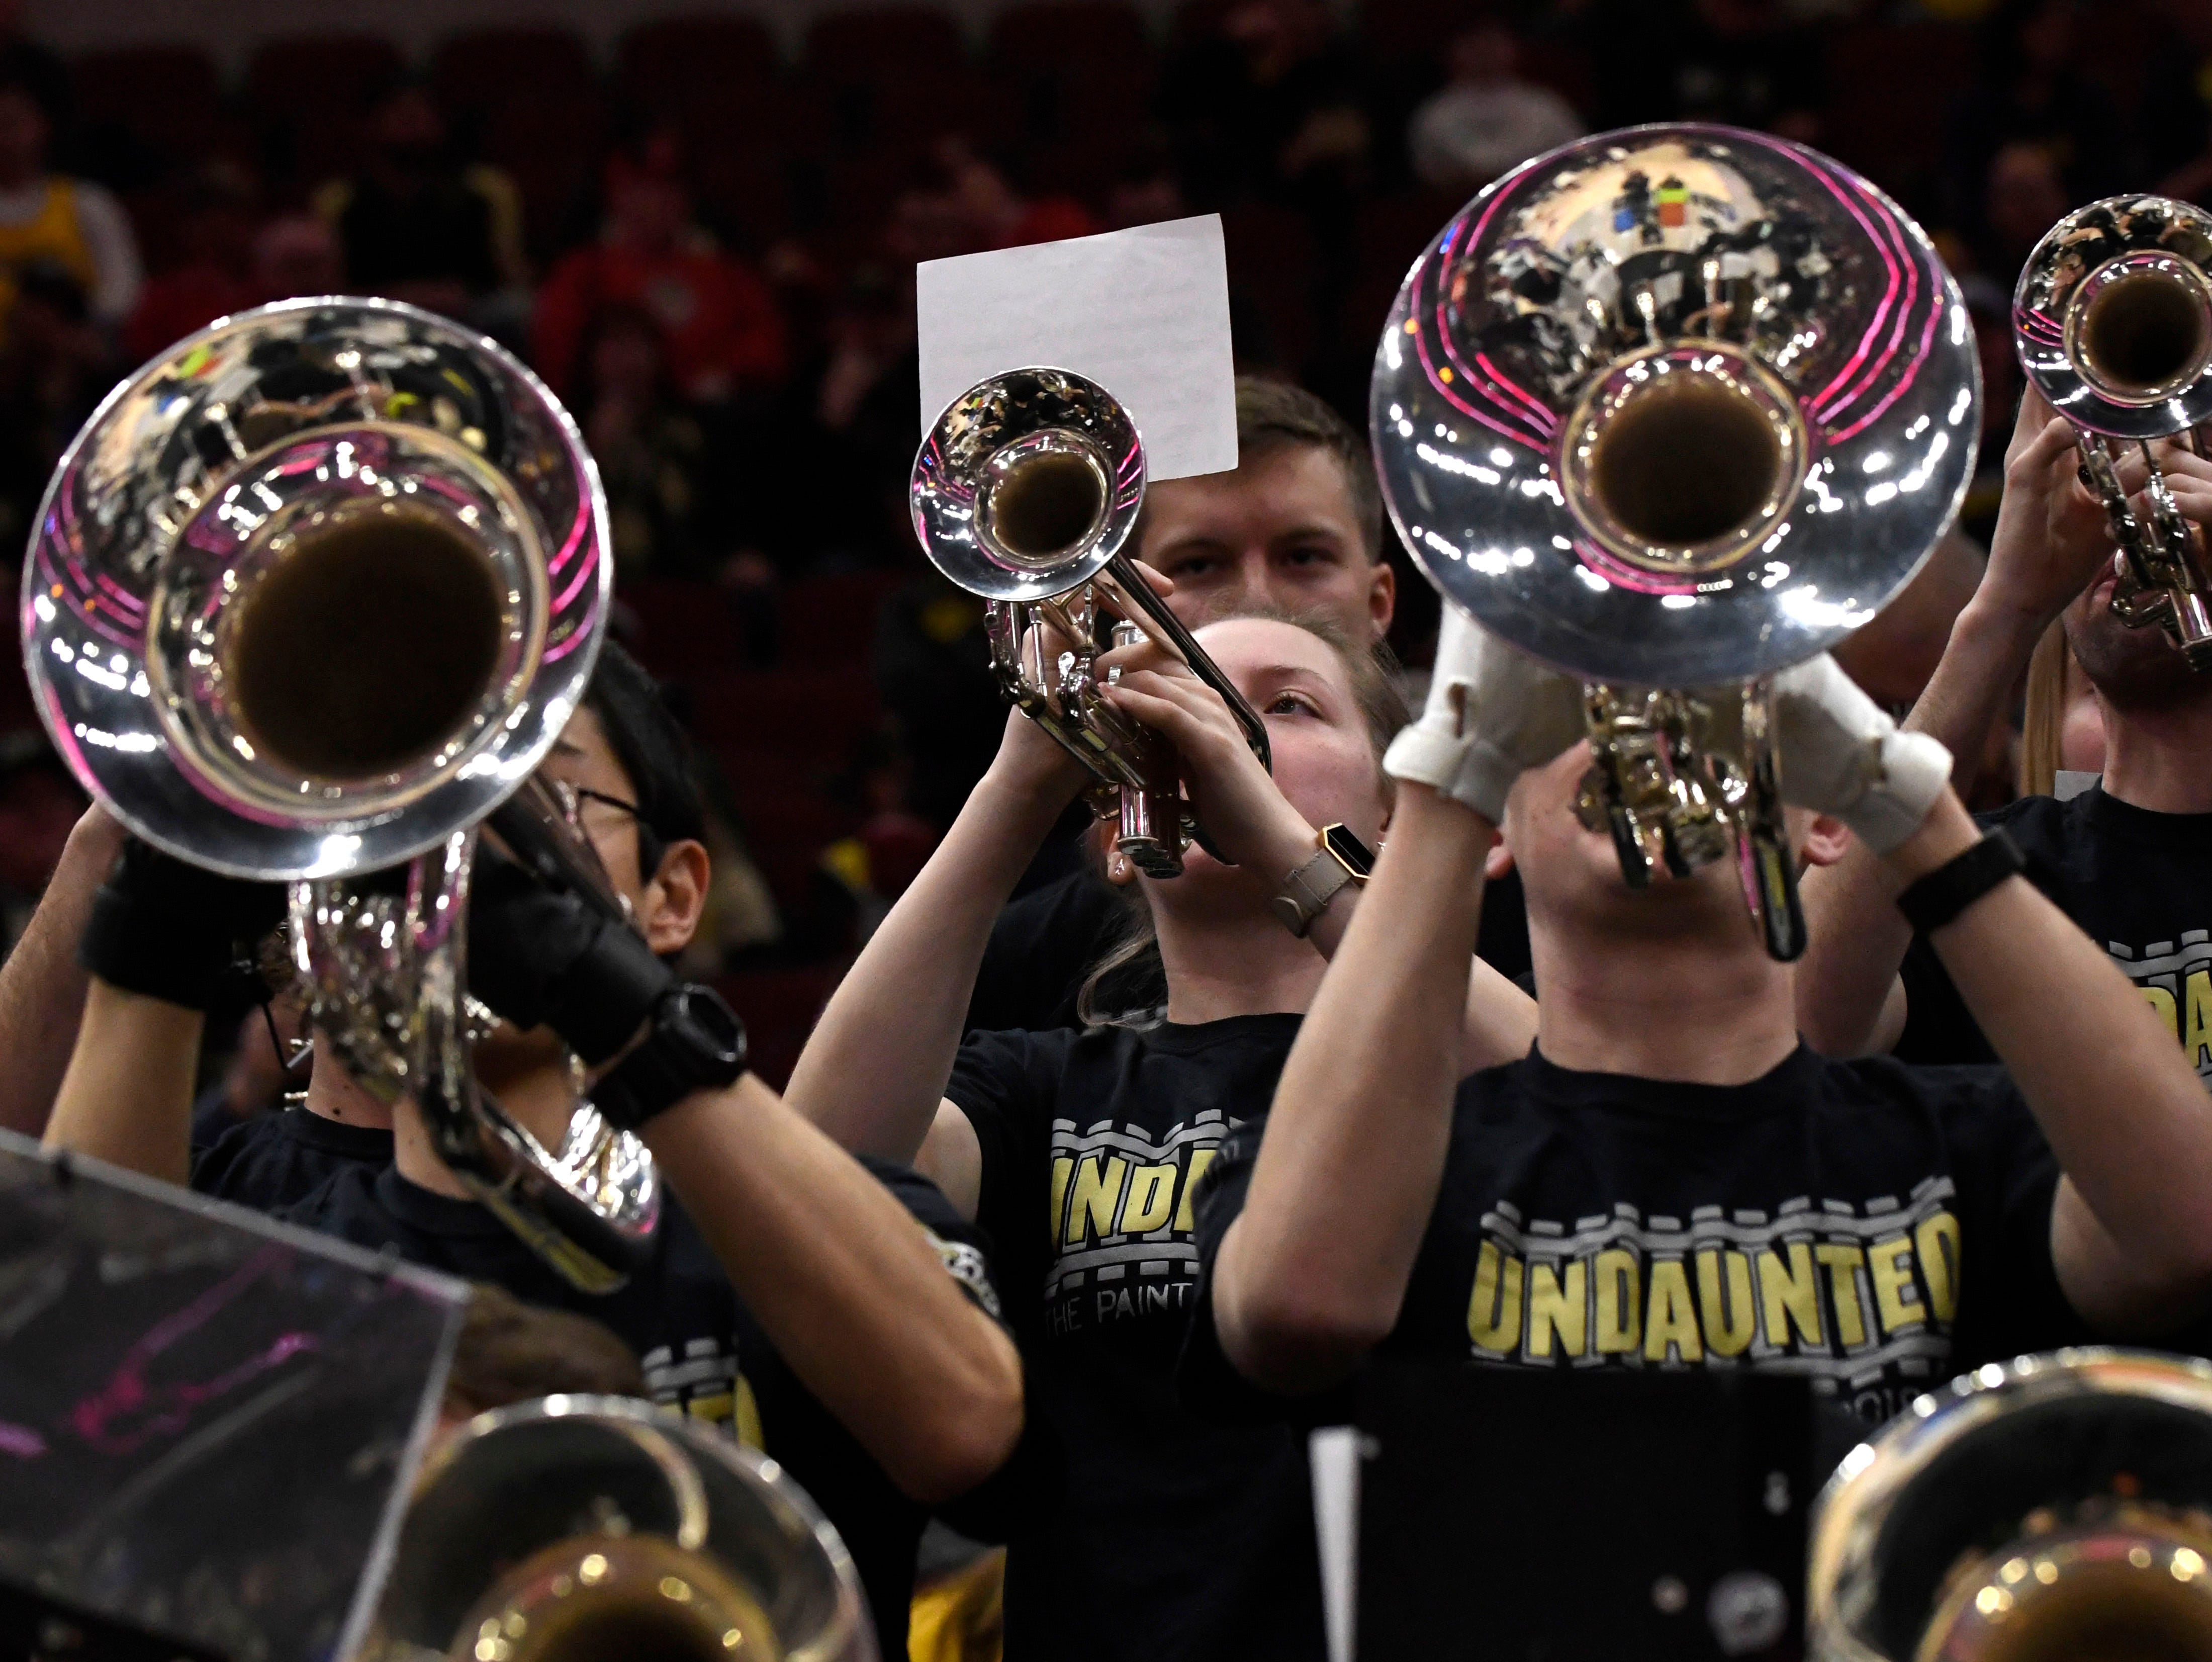 Mar 15, 2019; Chicago, IL, USA; The Purdue Boilermakers band plays during the first half in the Big Ten conference tournament against the Minnesota Golden Gophers at United Center. Mandatory Credit: David Banks-USA TODAY Sports